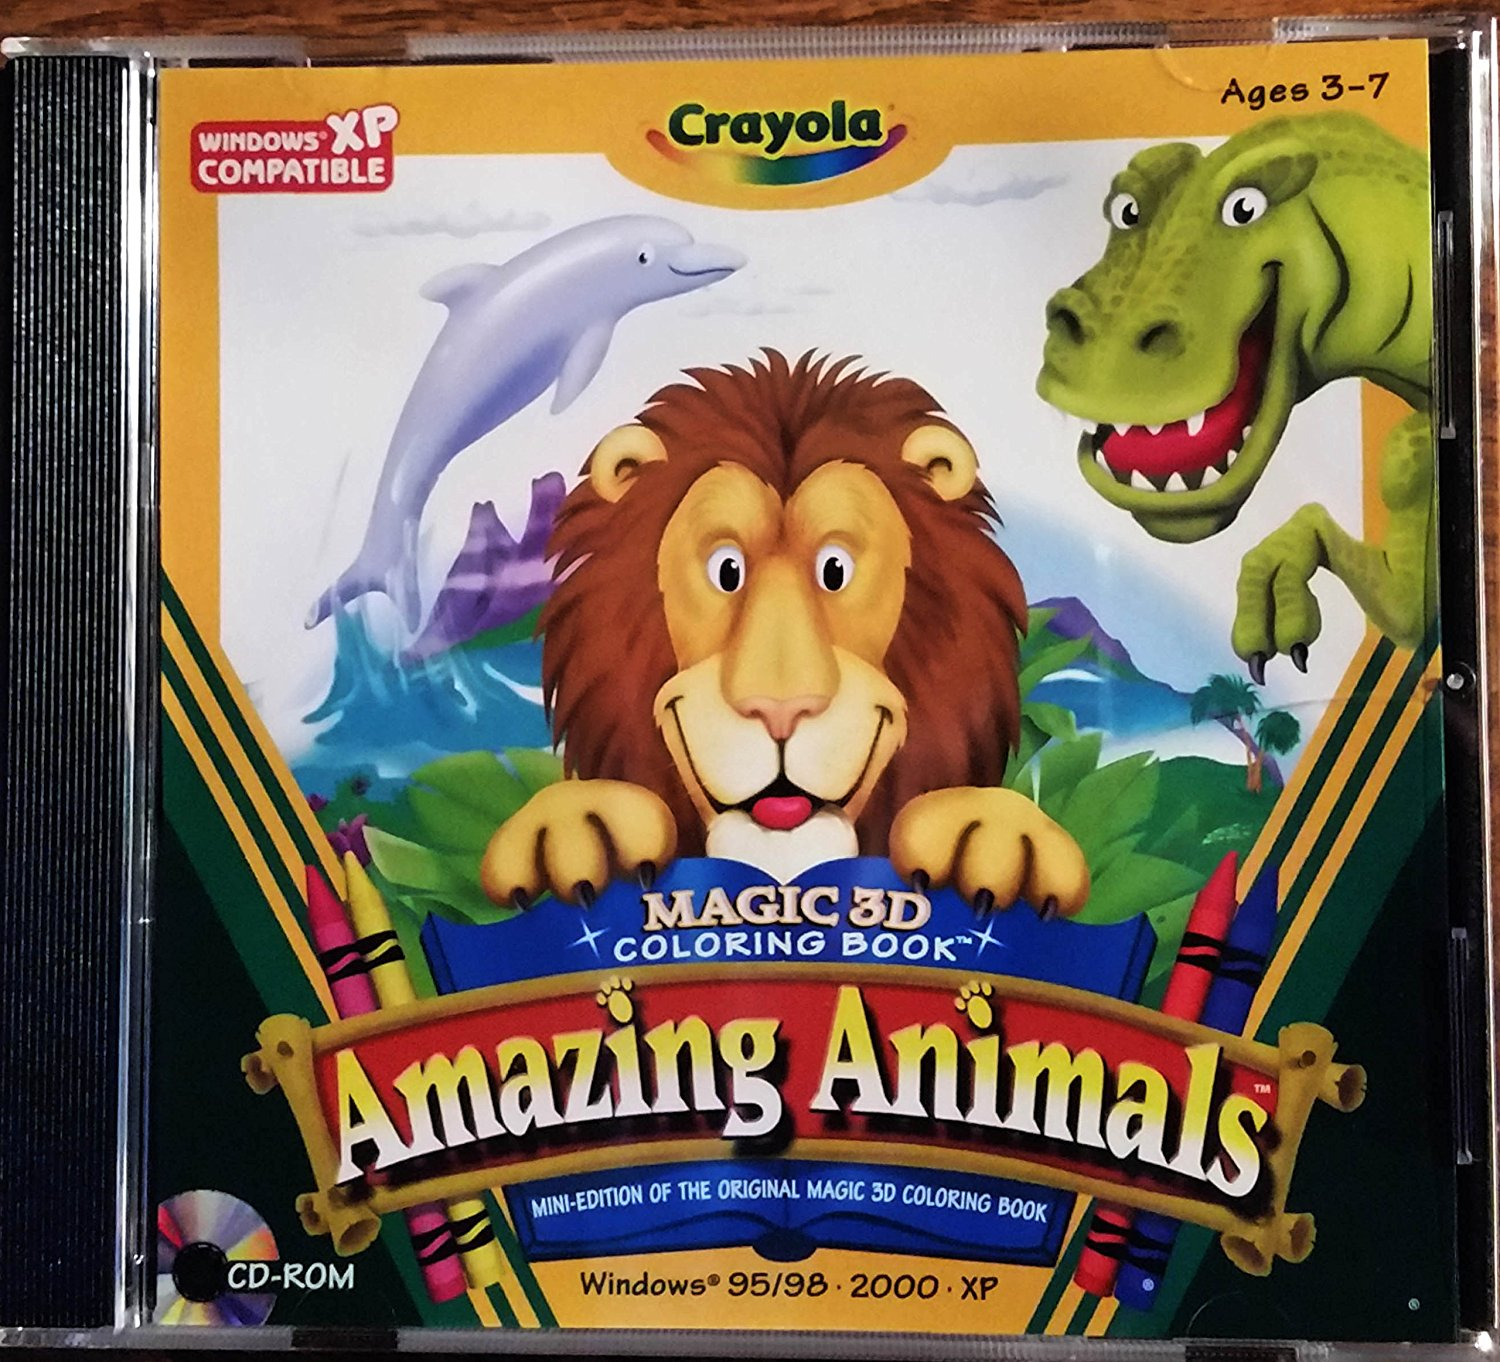 Buy Crayola Magic 3D Coloring Book - Amazing Animals in Cheap Price ...